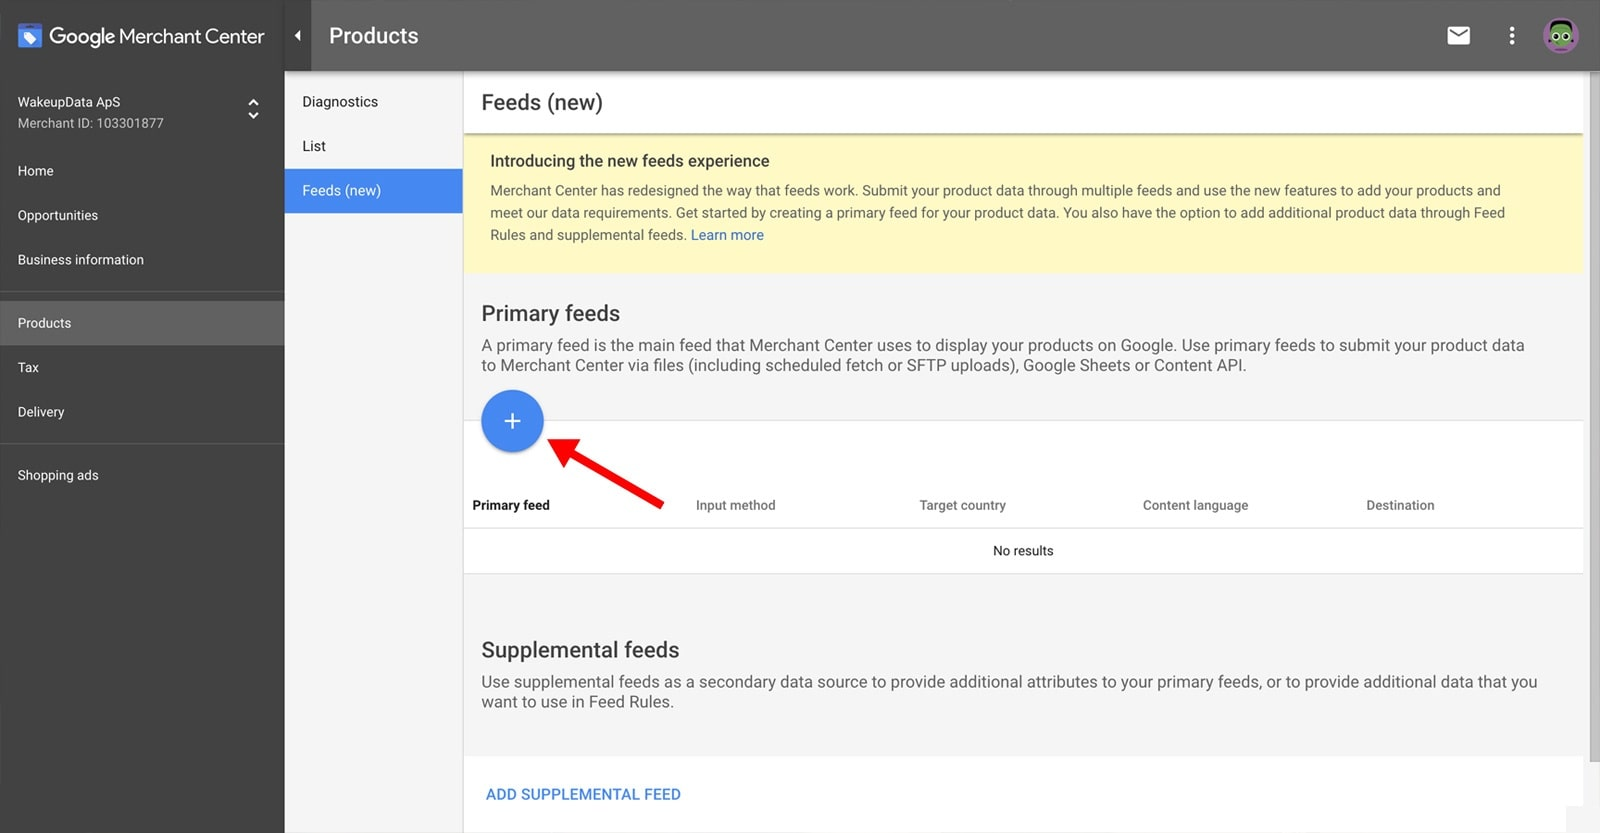 Google Merchant Center with WakeupData